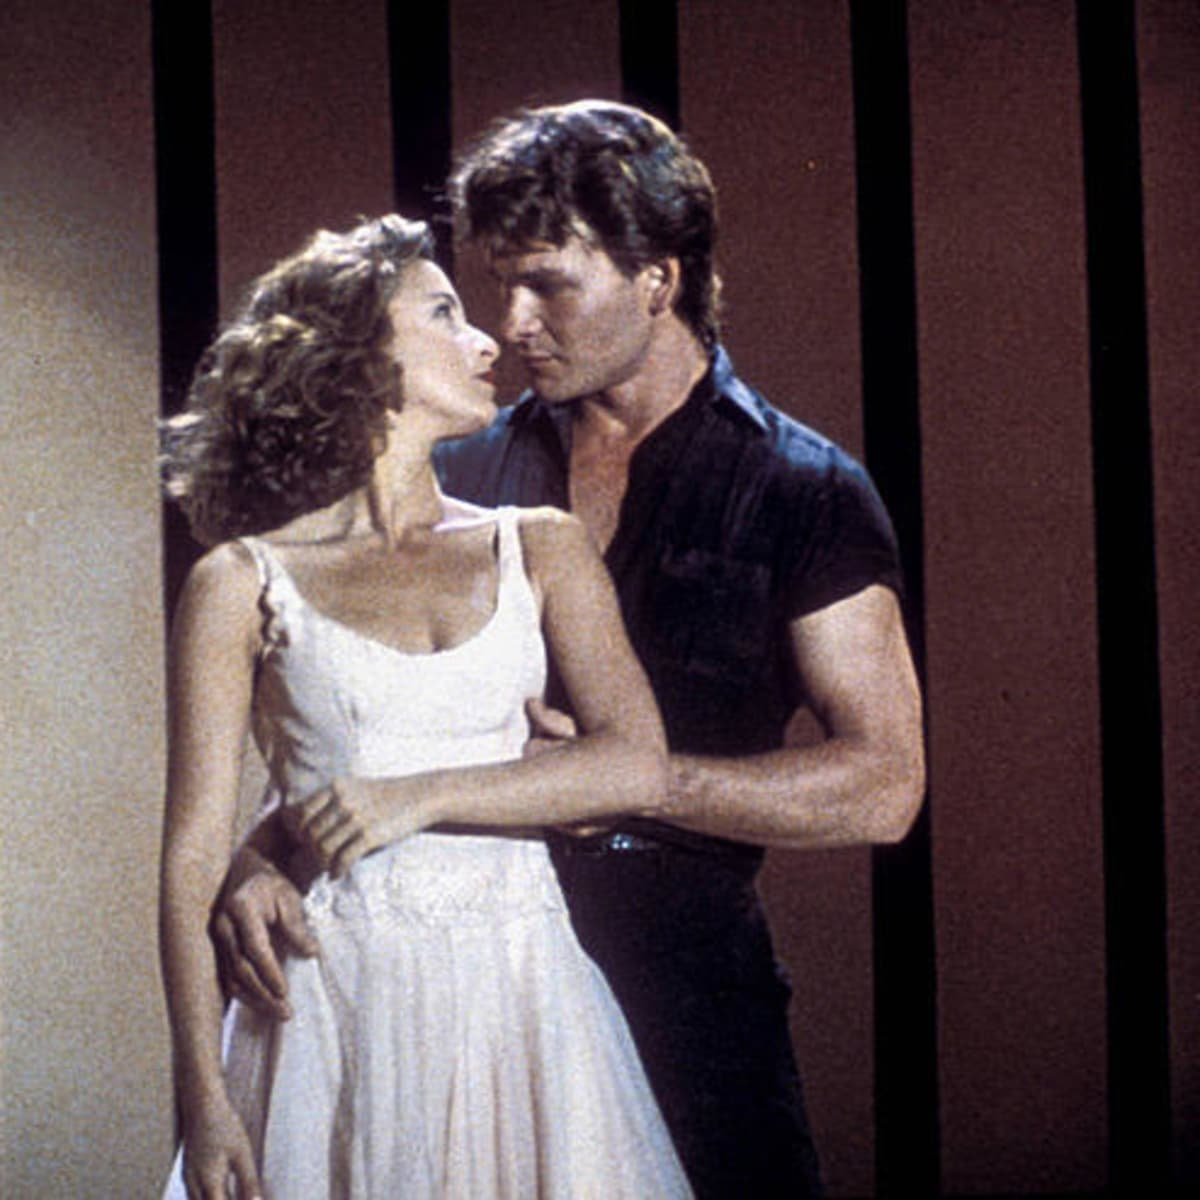 jennifer grey patrick swayze dirty dancing fse9fcdn85 20 Things You Might Not Have Realised About The 1989 Film Road House